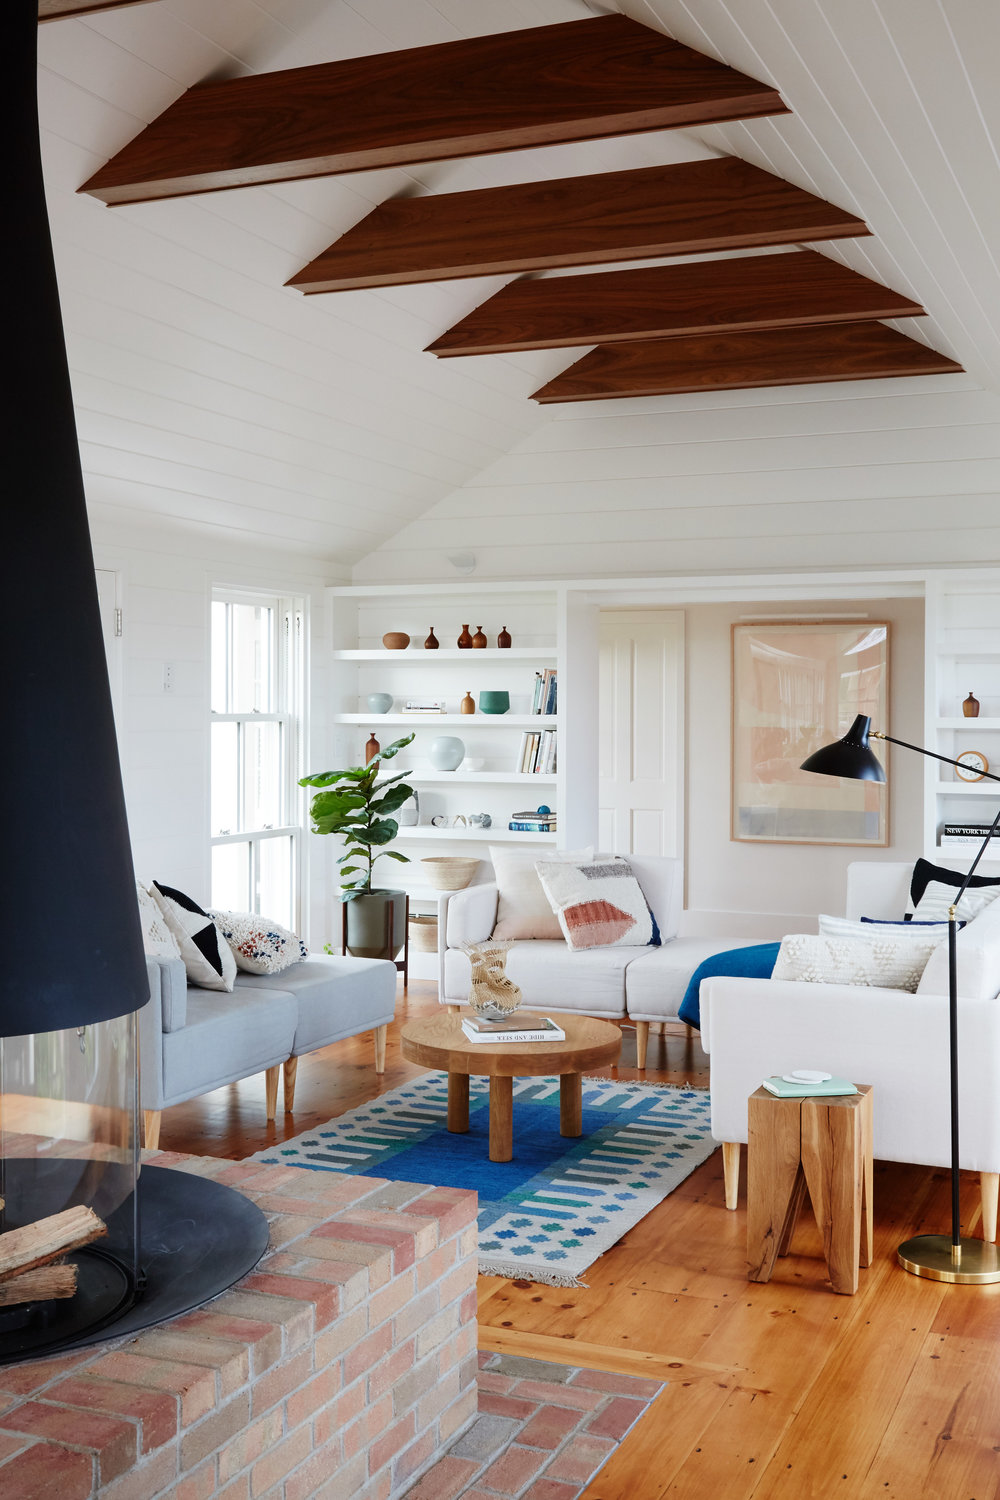 Interior Design - Cove House, Martha's Vineyard, MA